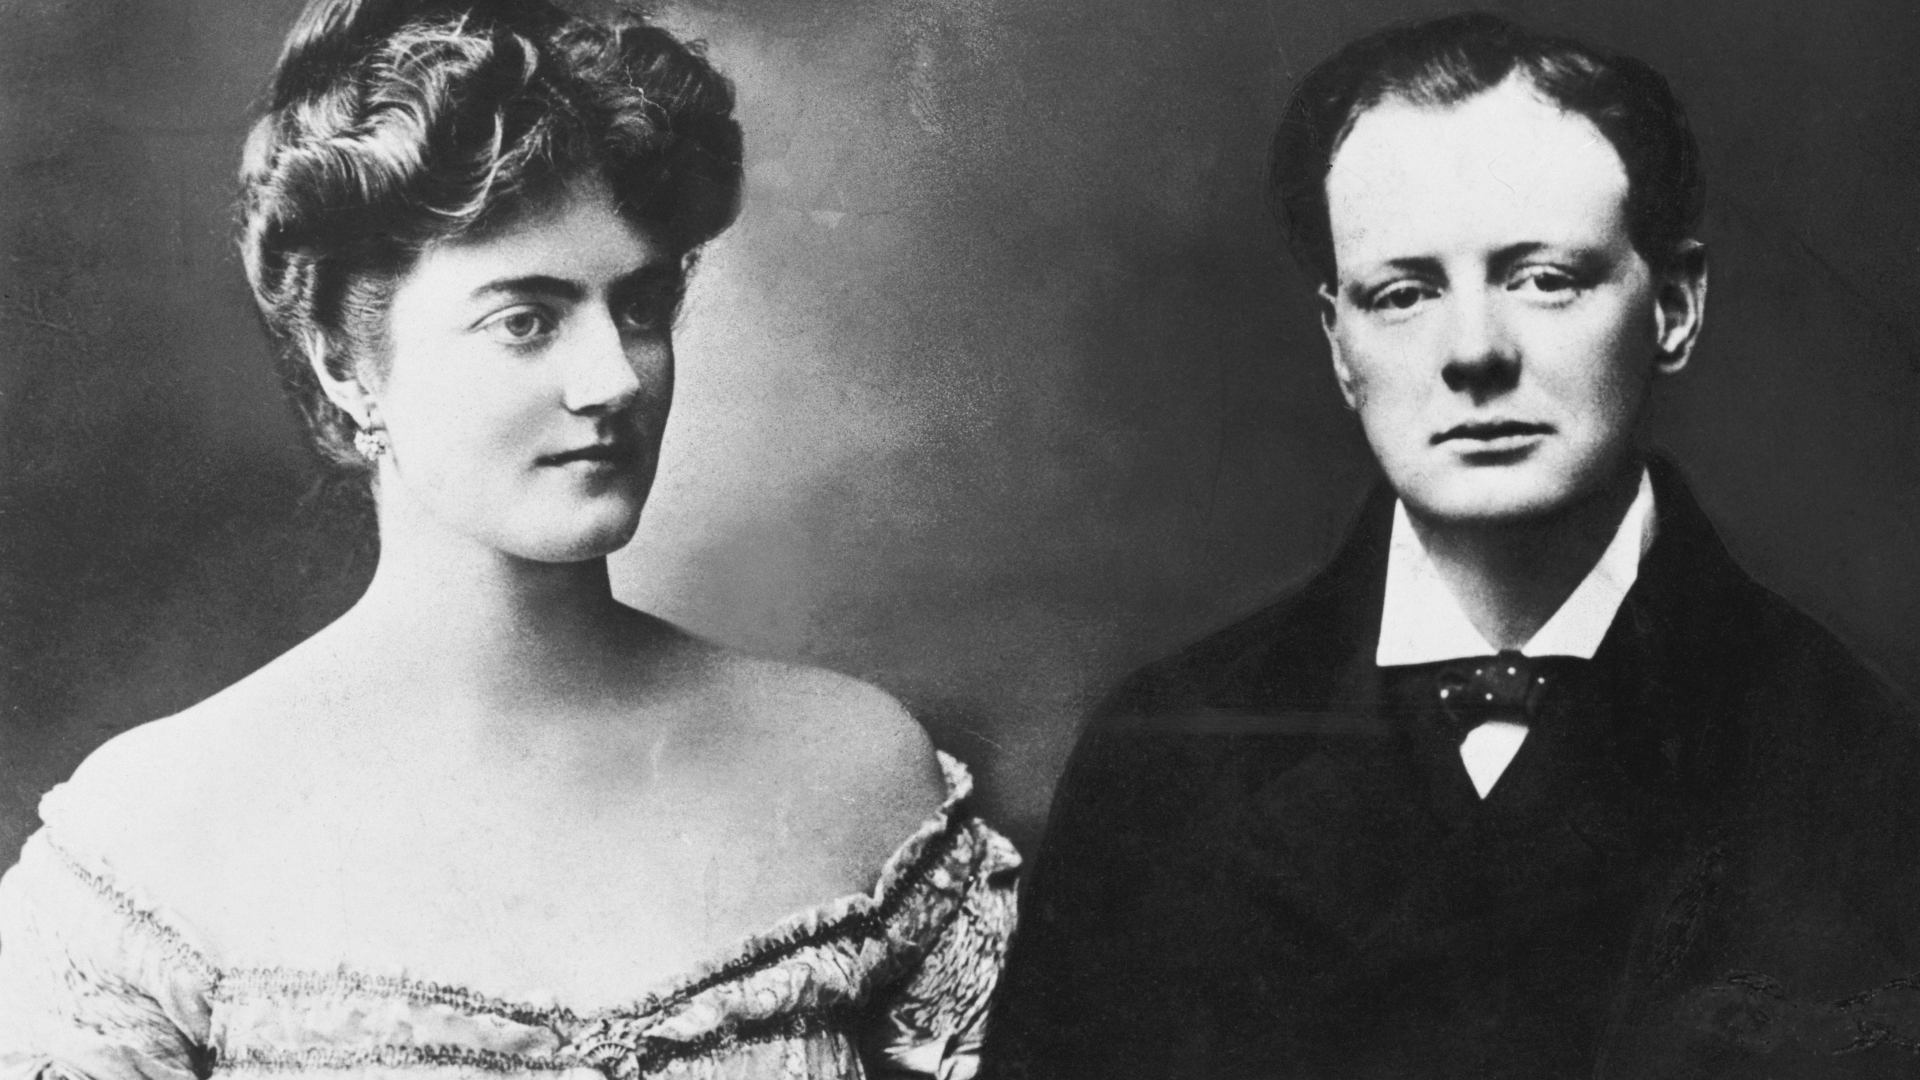 The engagement picture of Winston Churchill and Clementine Hozier. (Credit: Bettmann Archive/Getty Images)